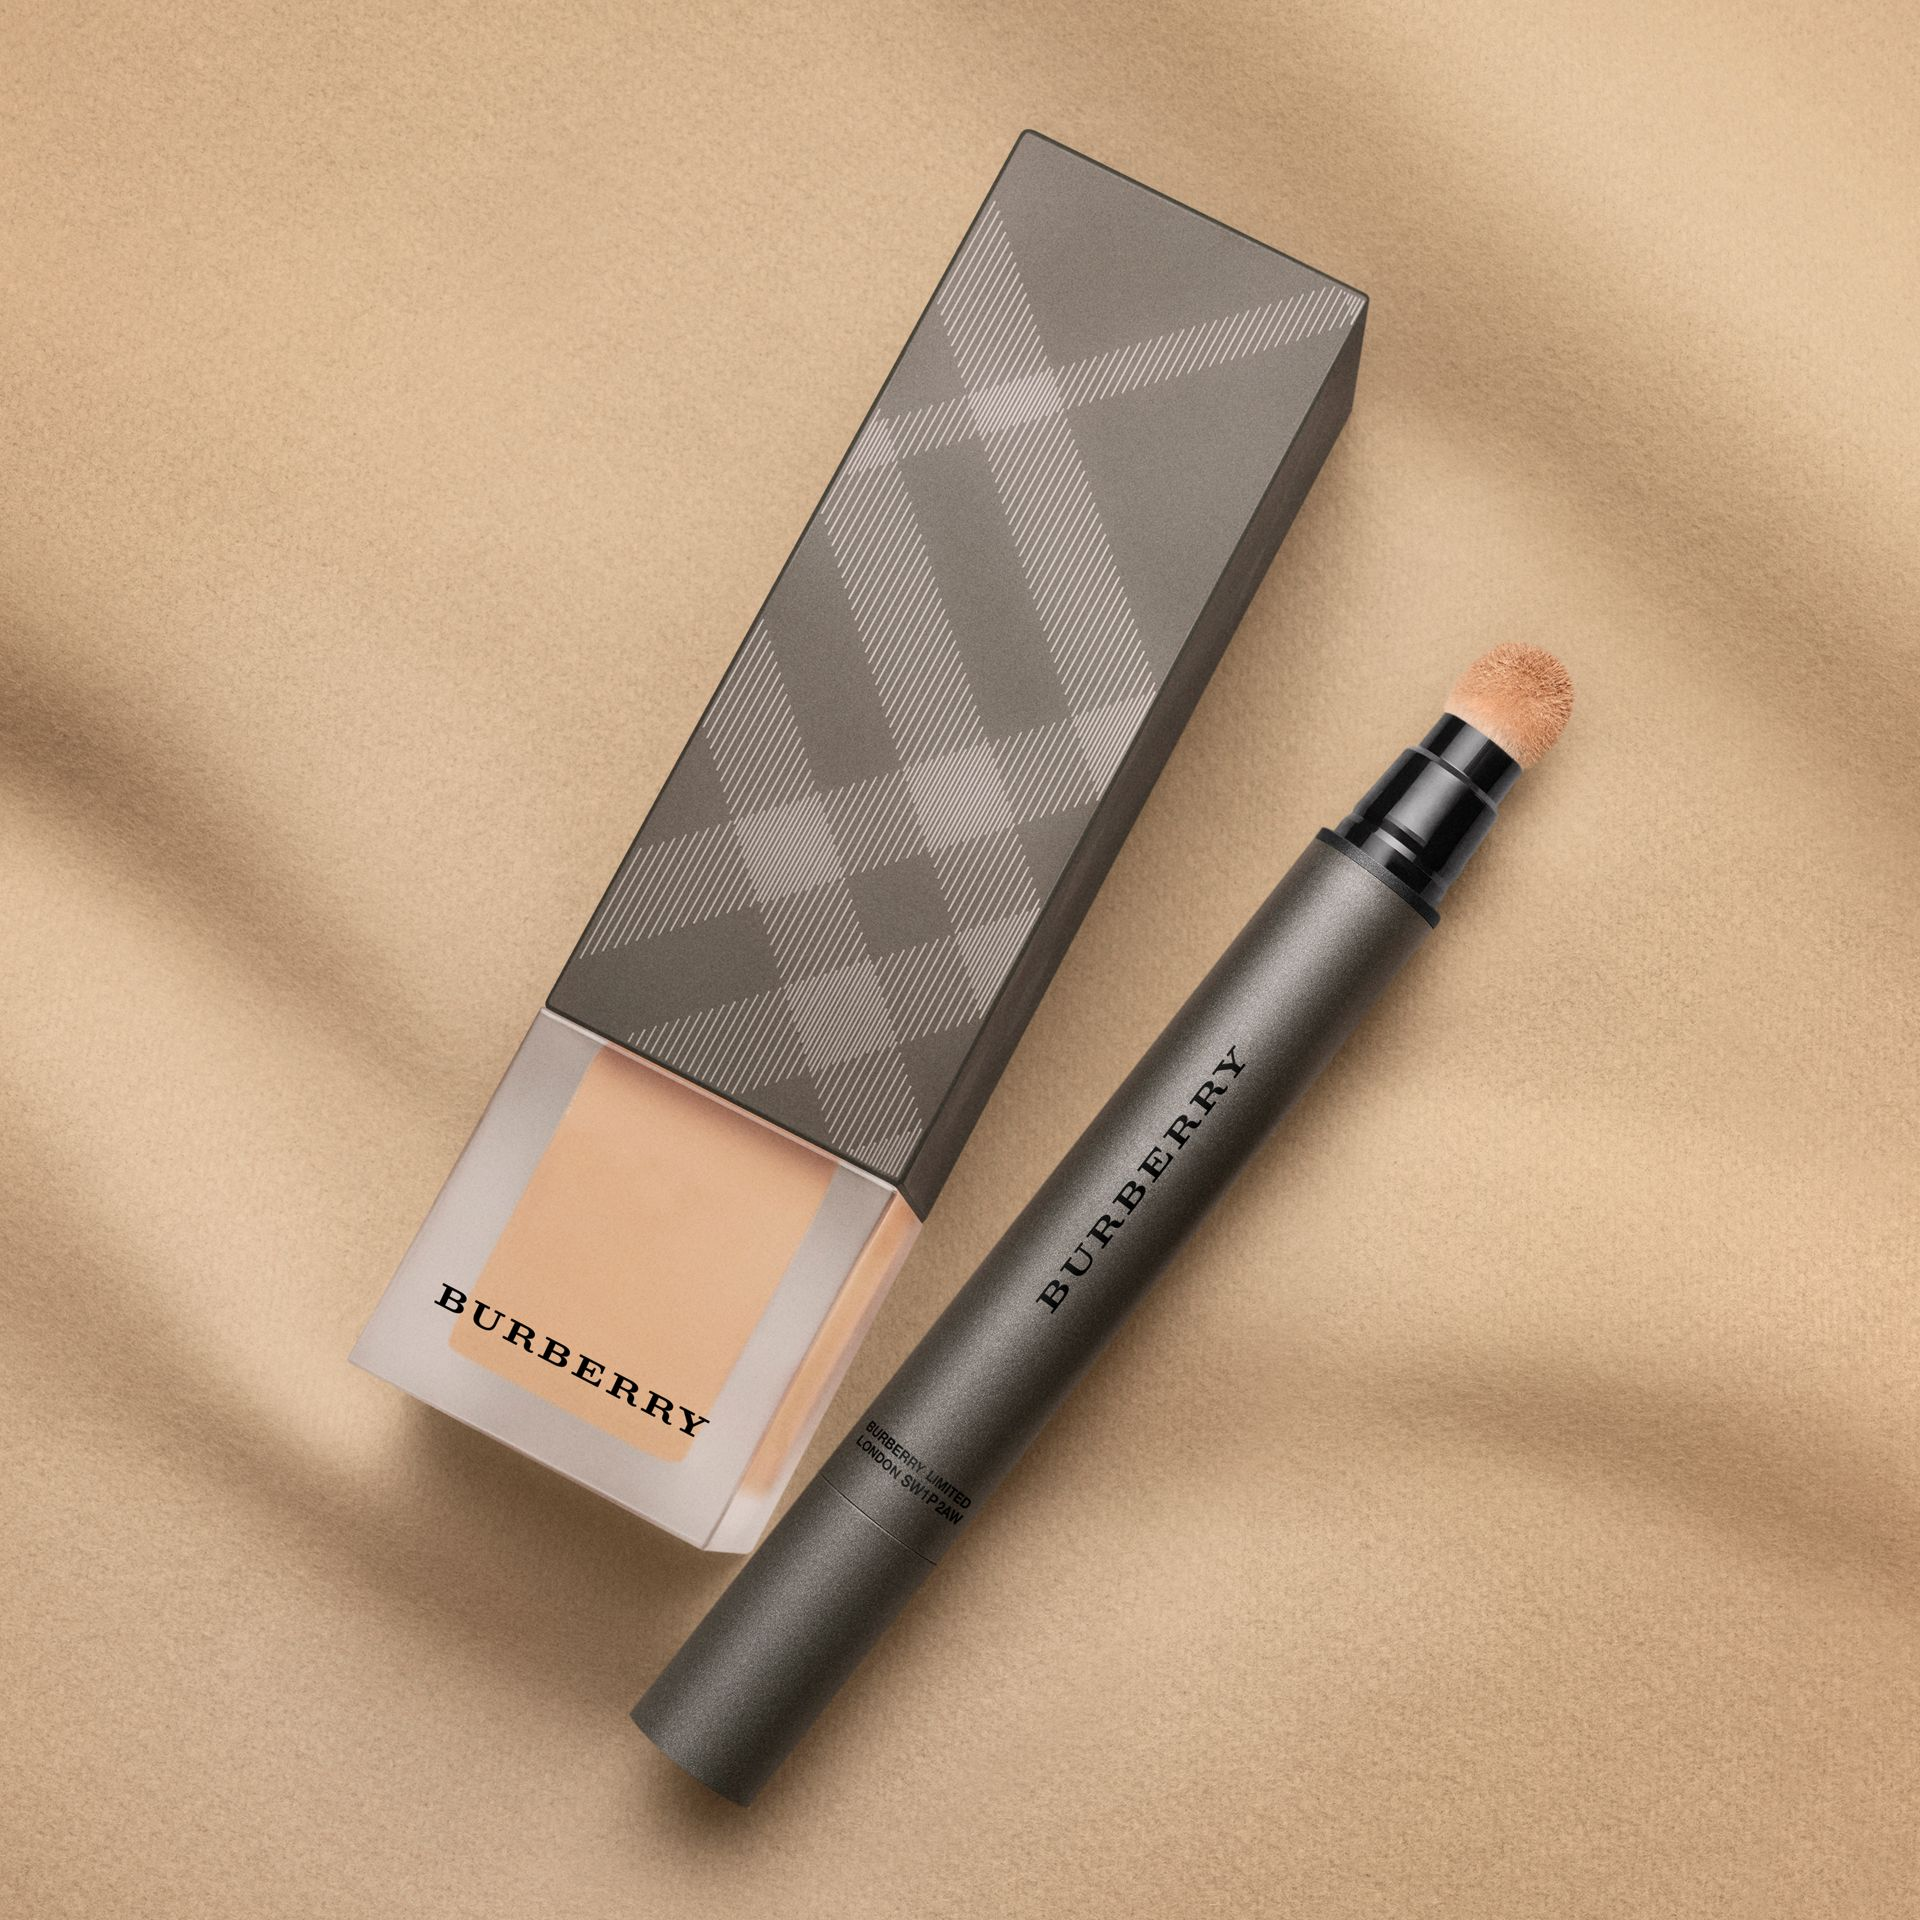 Warm nude 34 Burberry Cashmere Sunscreen SPF 20 – Warm Nude No.34 - gallery image 4